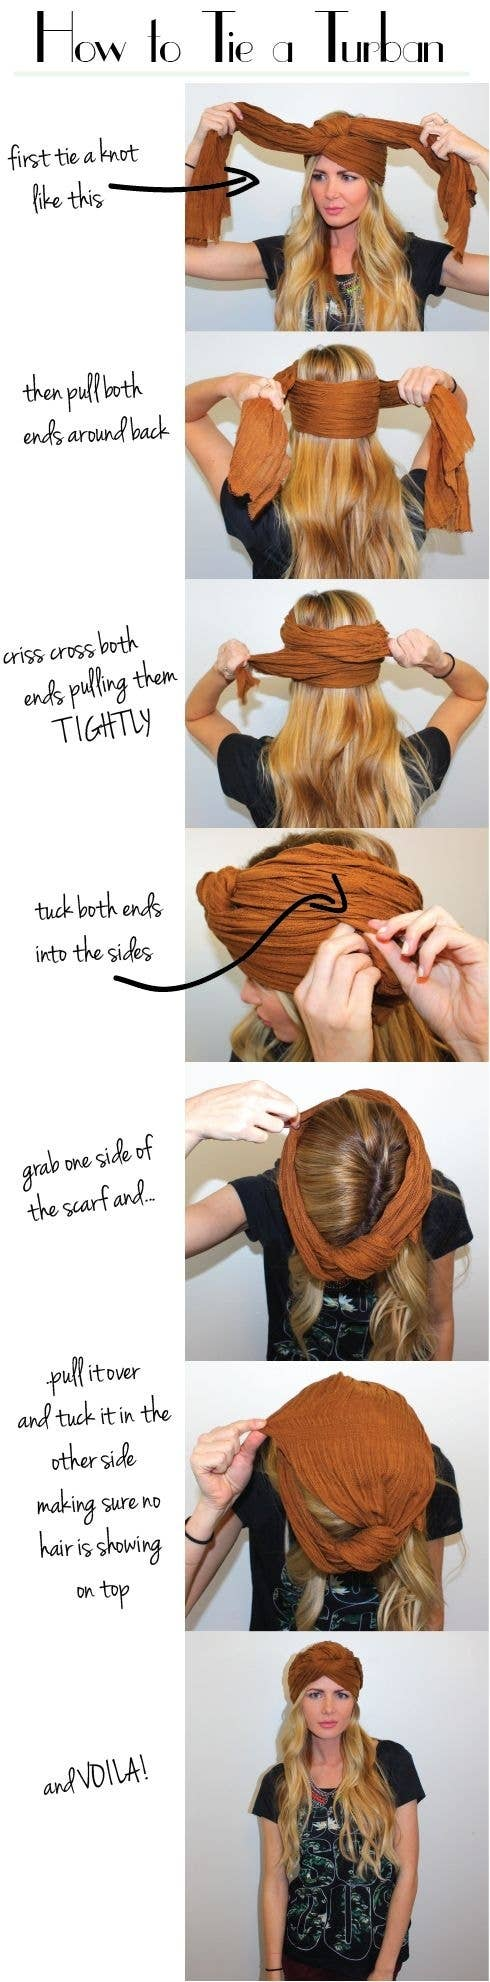 26 Cover A Bad Hair Day With A Turban